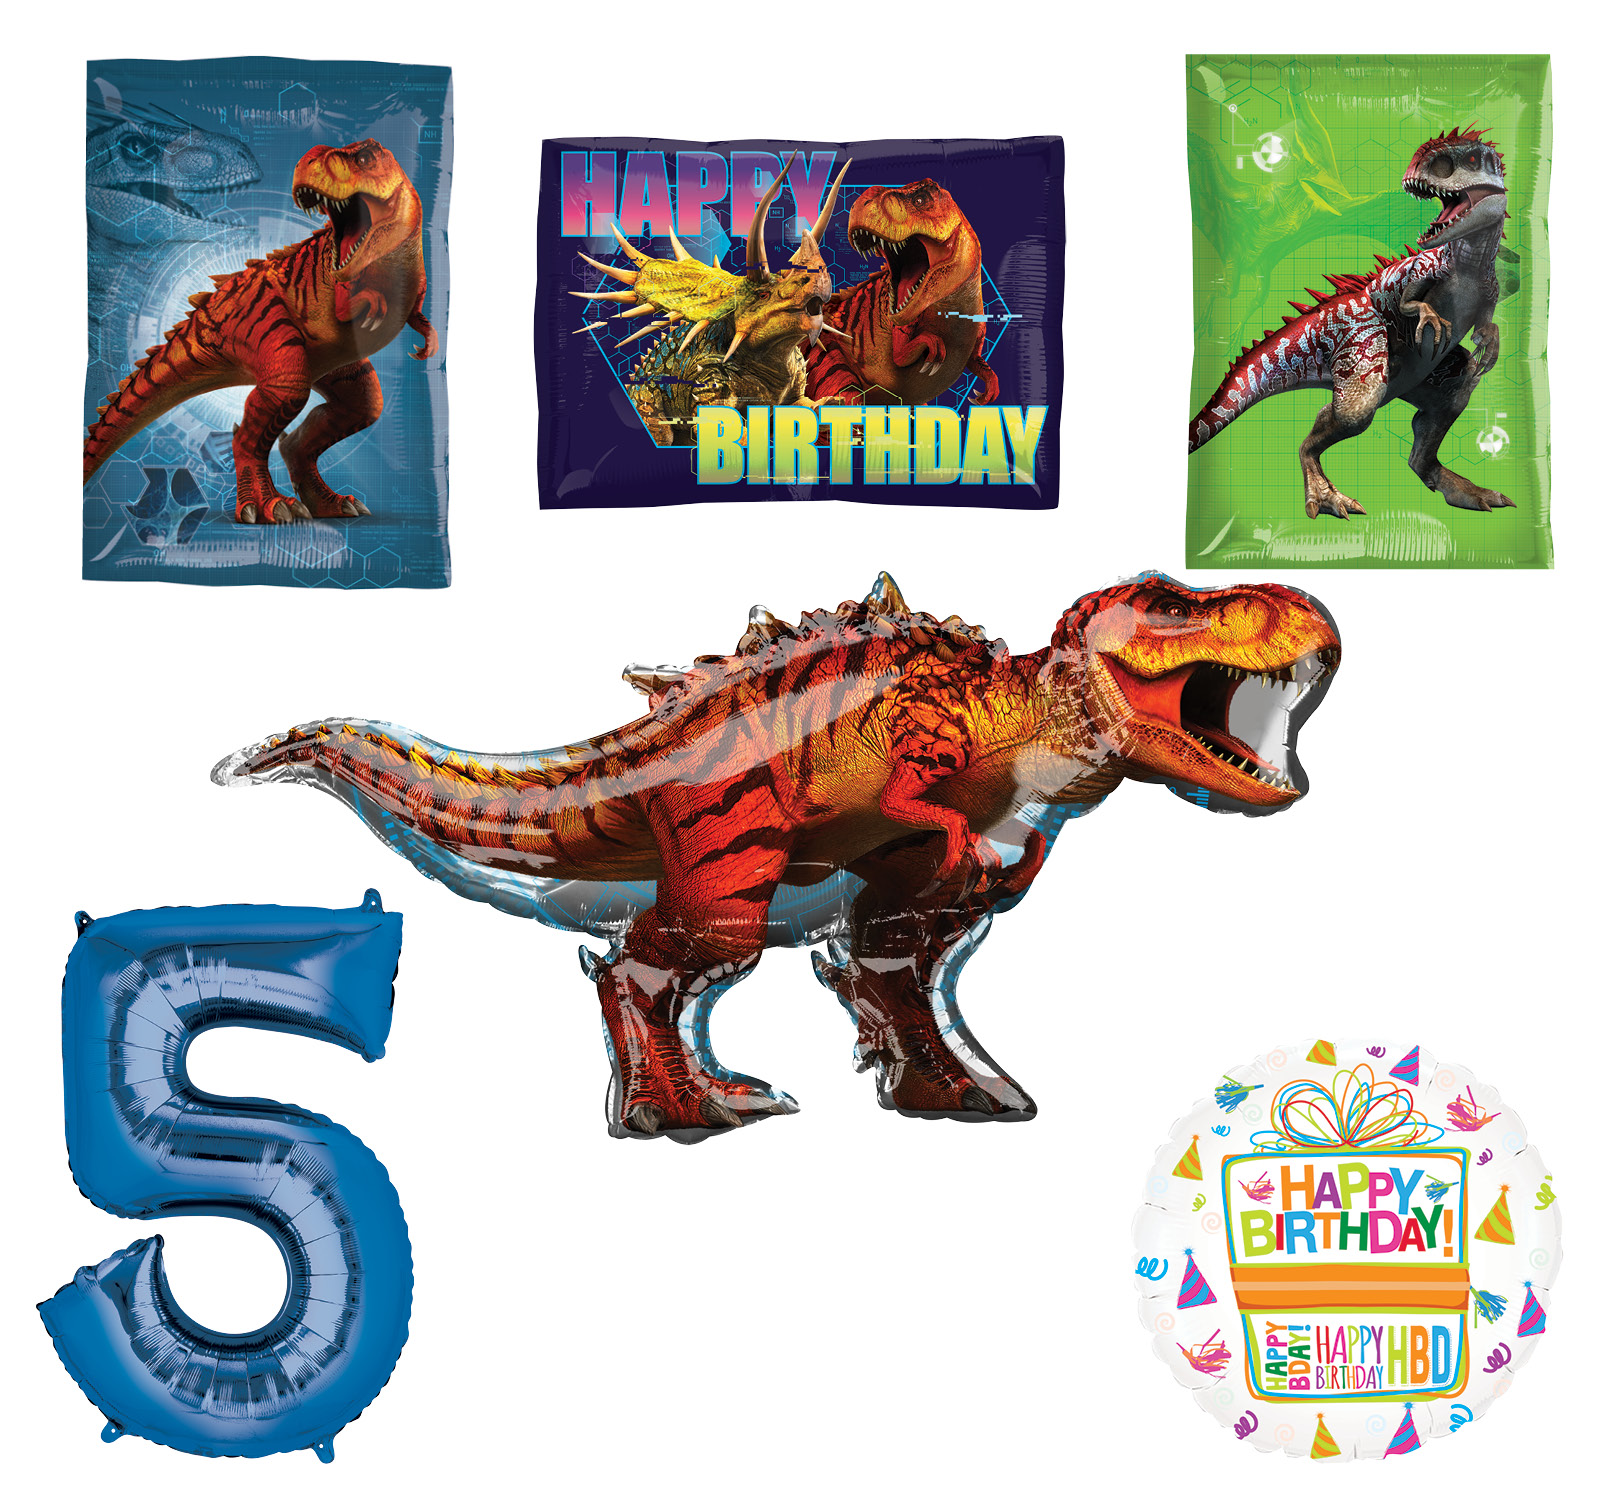 Jurassic World Dinosaur 5th Birthday Party Supplies and Balloon Decorations